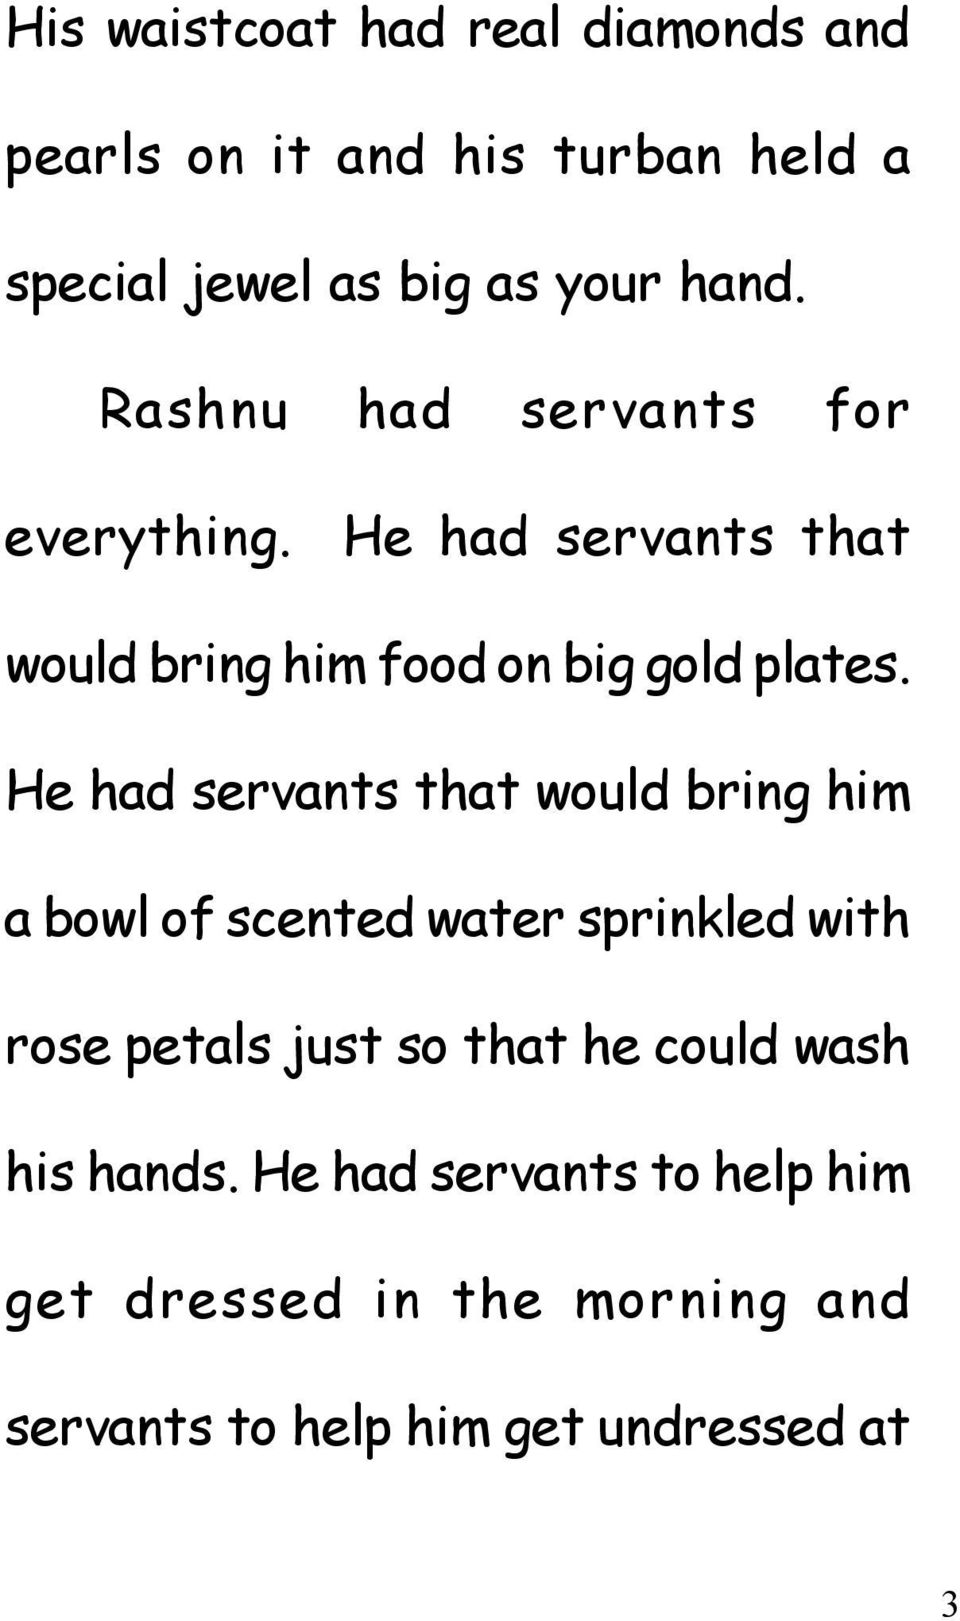 He had servants that would bring him a bowl of scented water sprinkled with rose petals just so that he